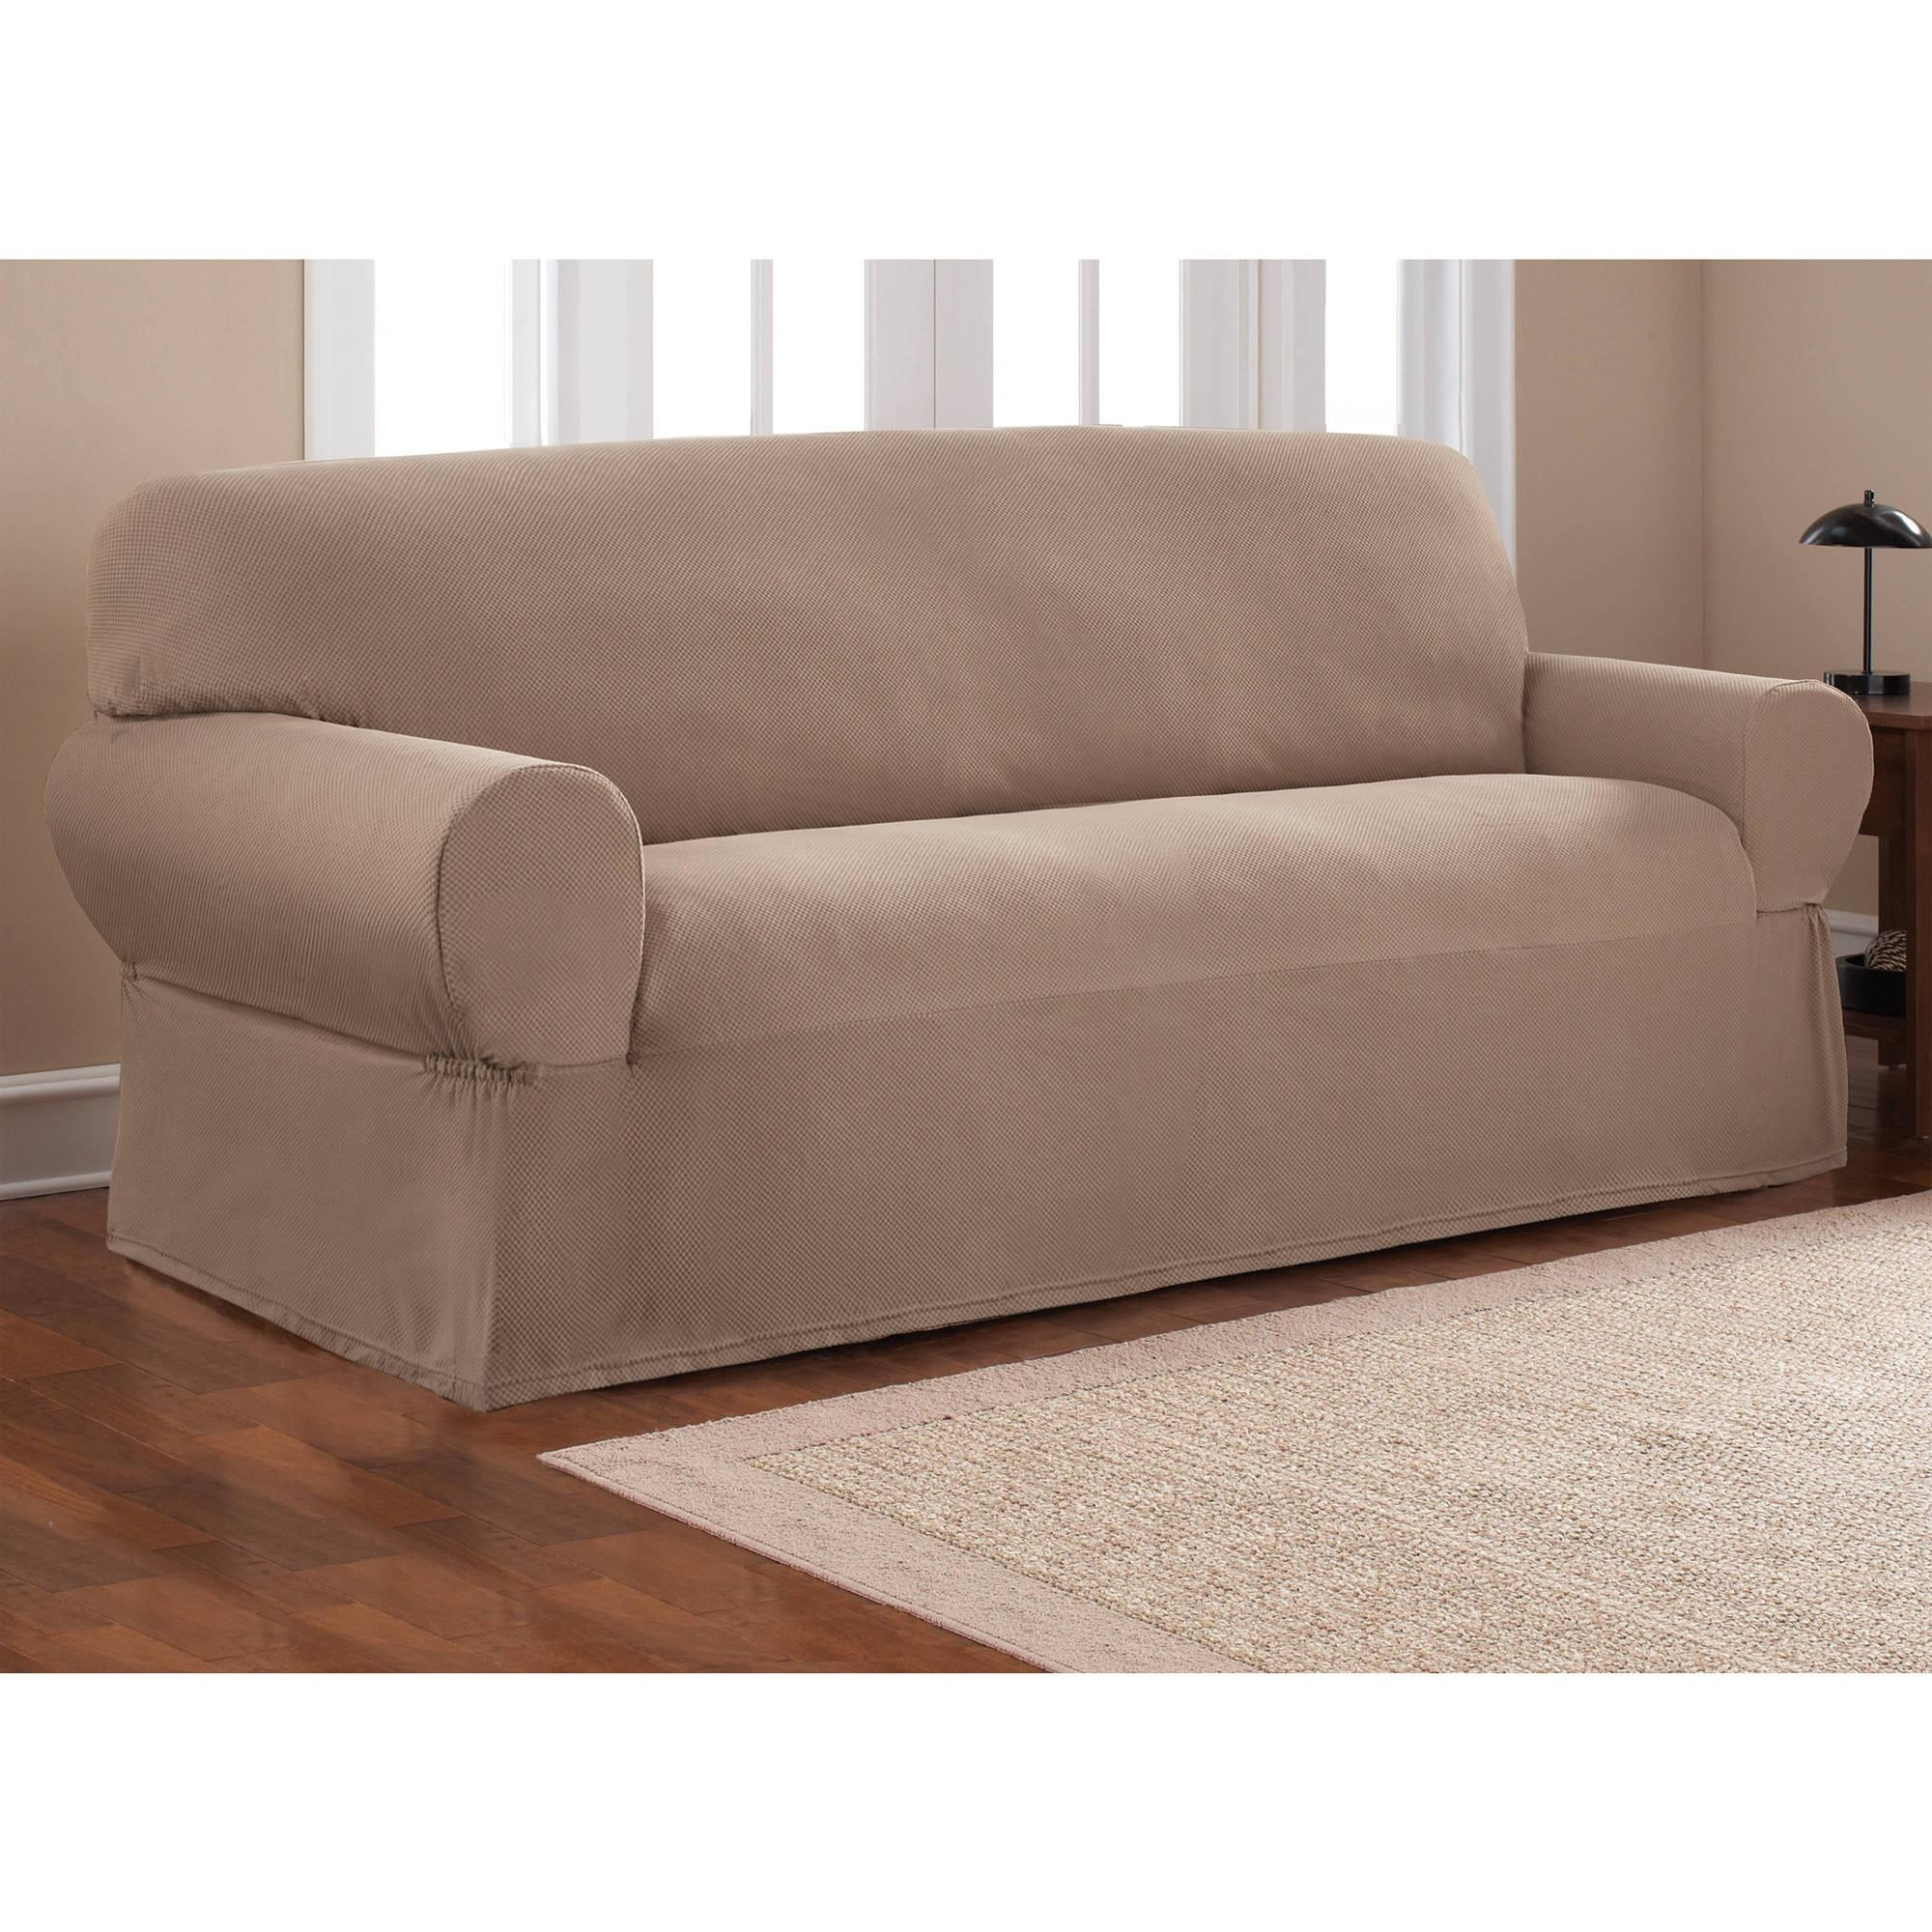 Mainstays 1 Piece Stretch Fabric Sofa Slipcover – Walmart In Slip Covers For Love Seats (Image 13 of 20)